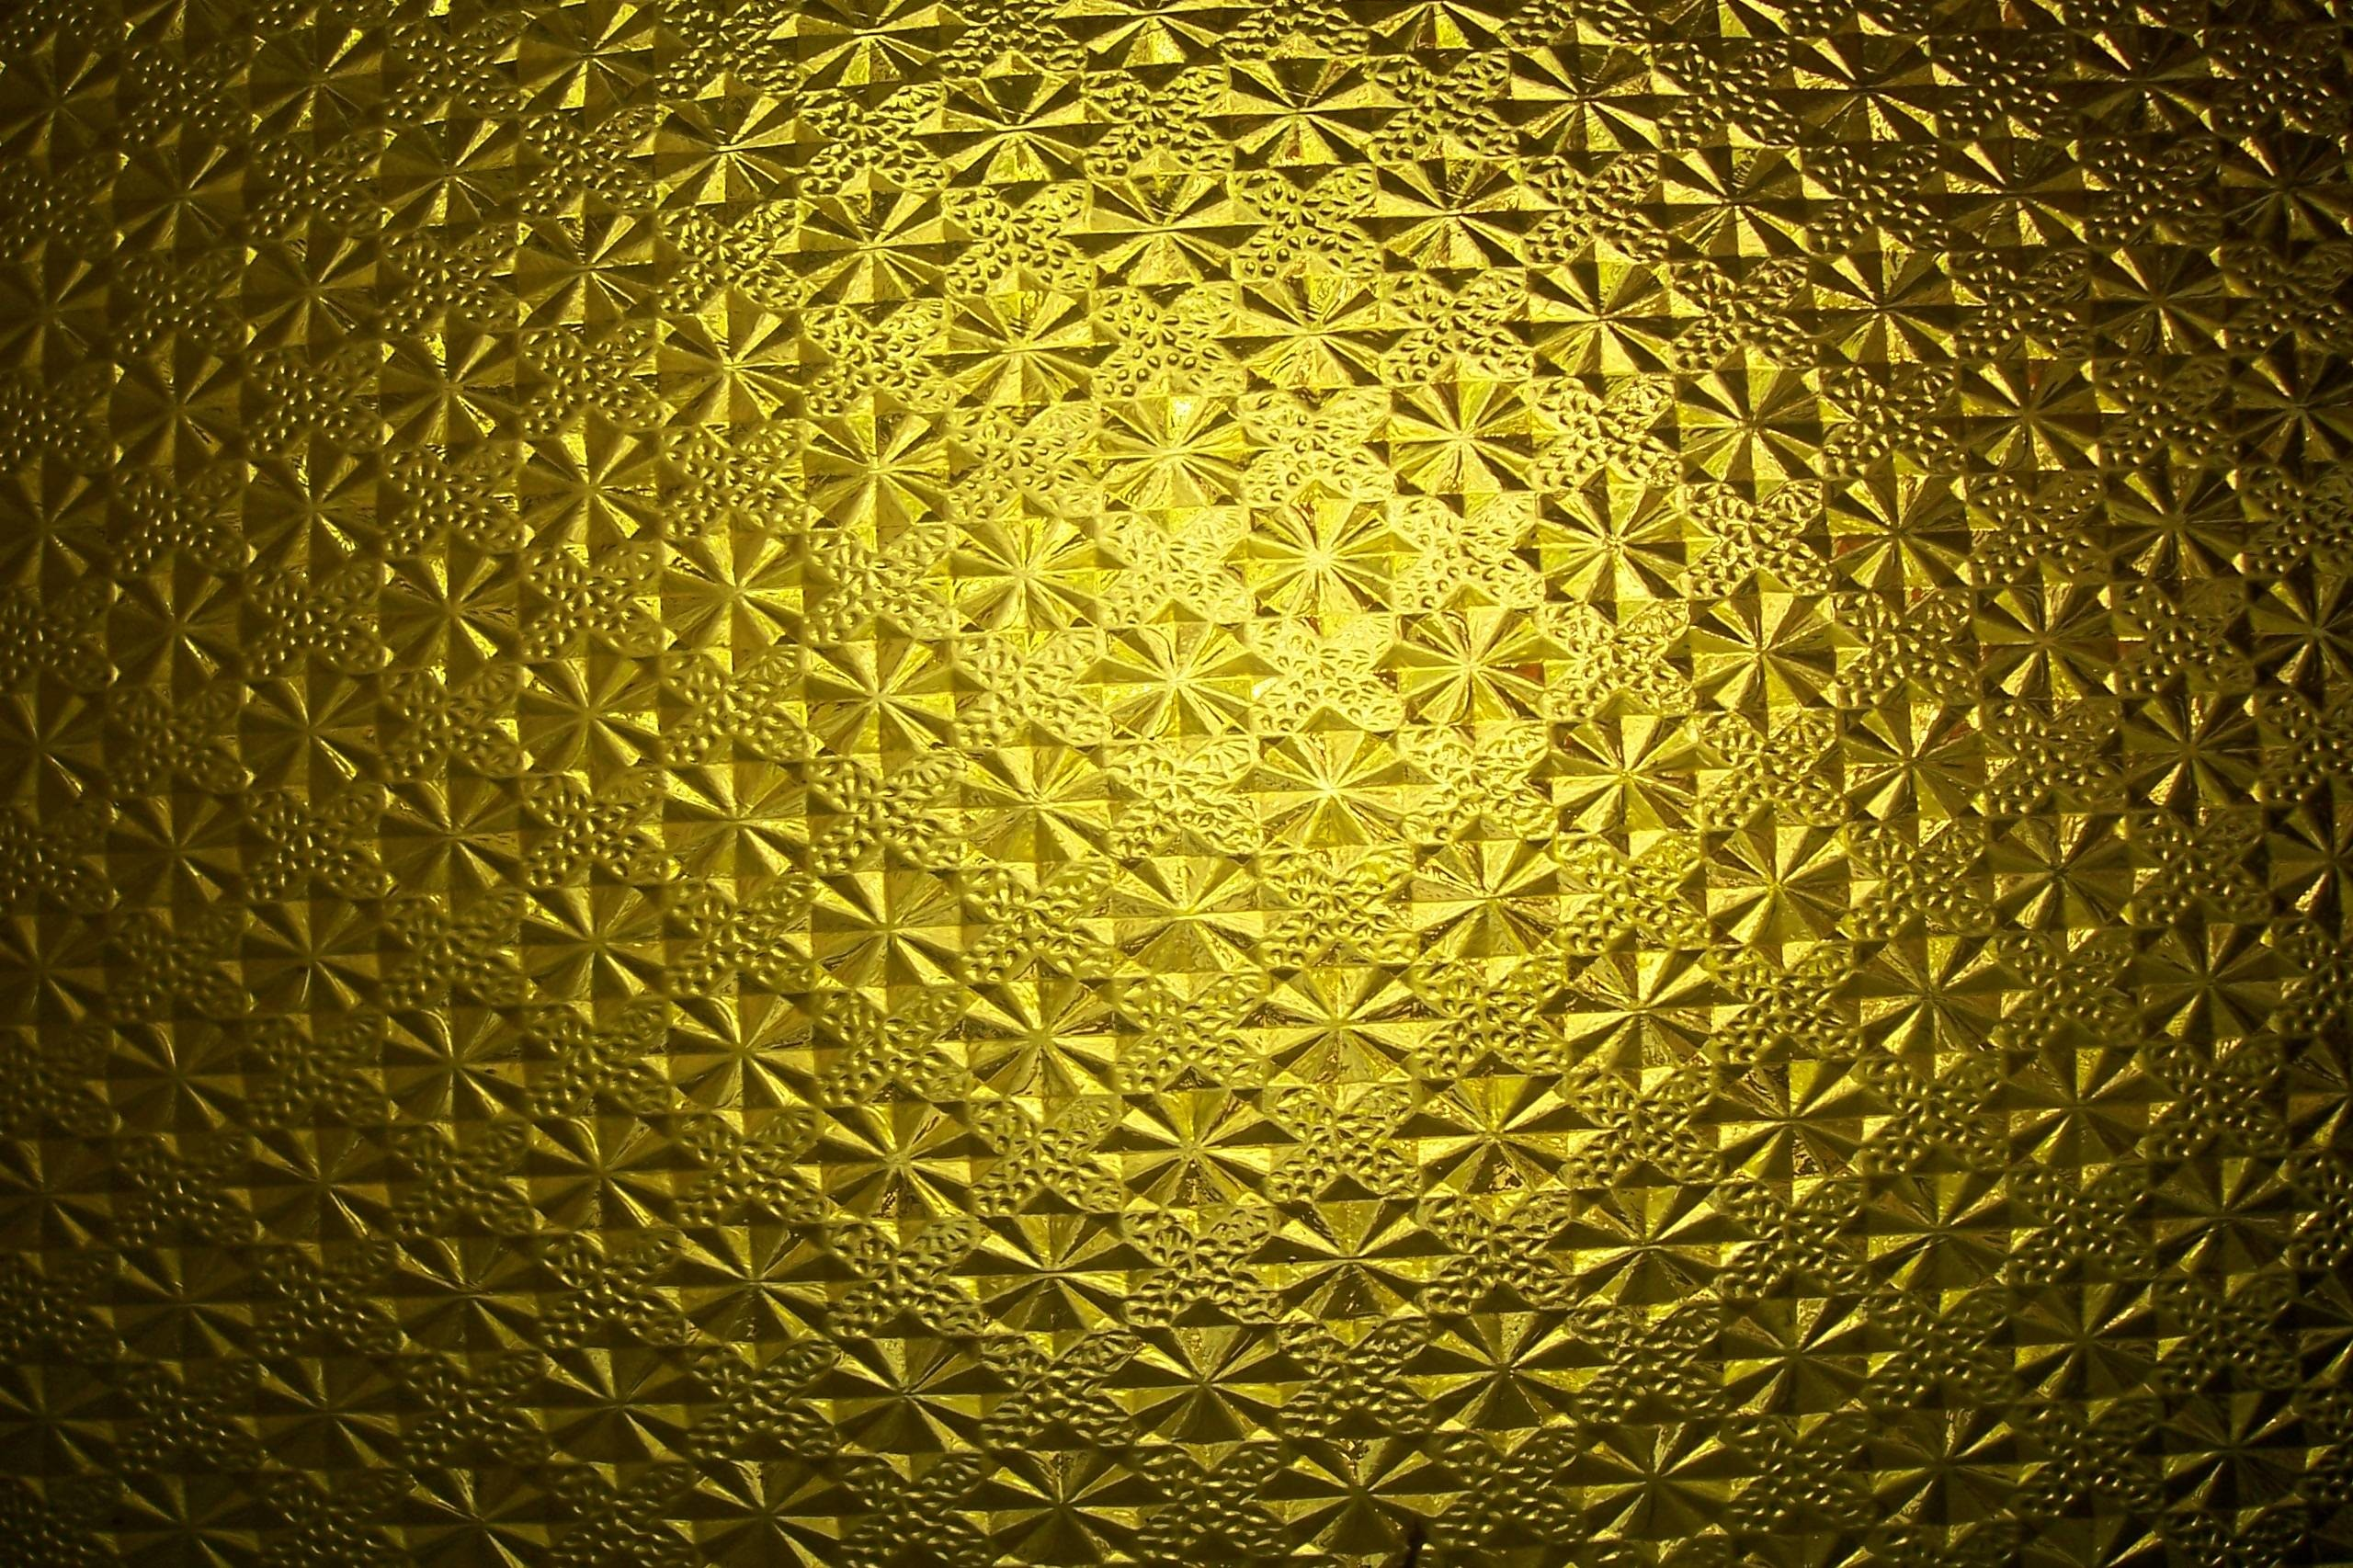 2560x1706 Gold Wallpaper 15 291218 Images HD Wallpapers| Wallfoy.